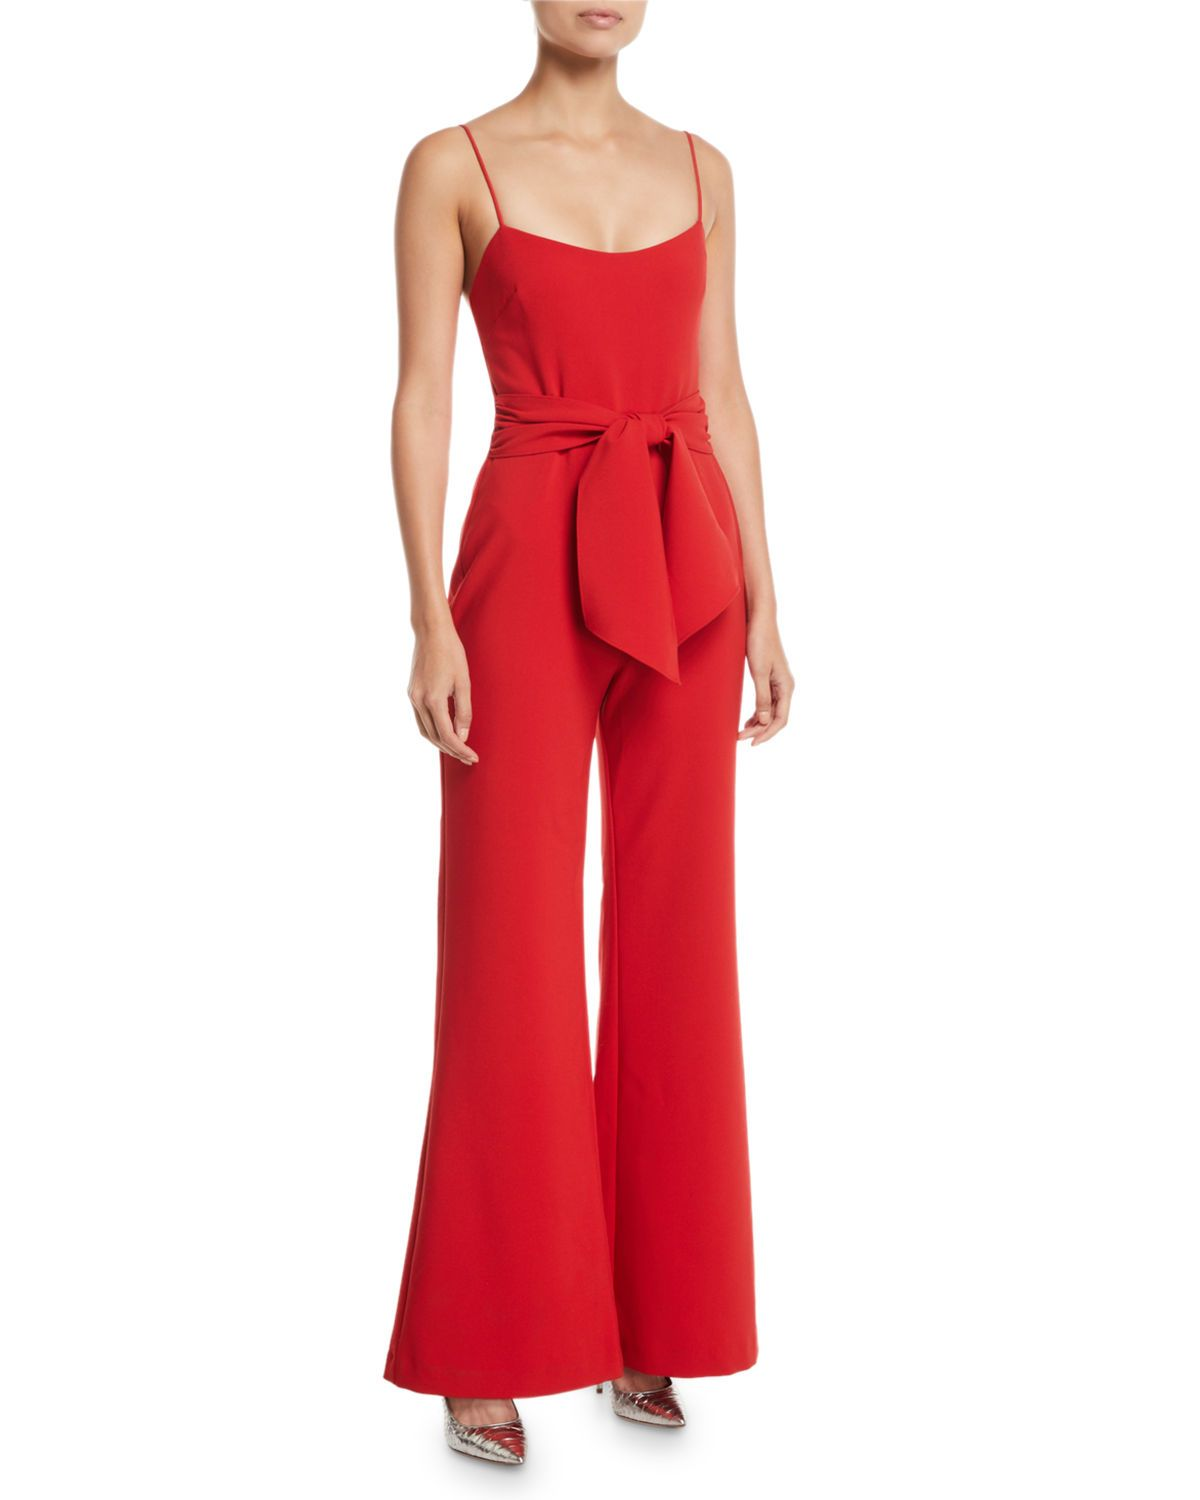 b09a4e53a358 Genevieve Wide-Leg Tie-Front Jumpsuit in 2018